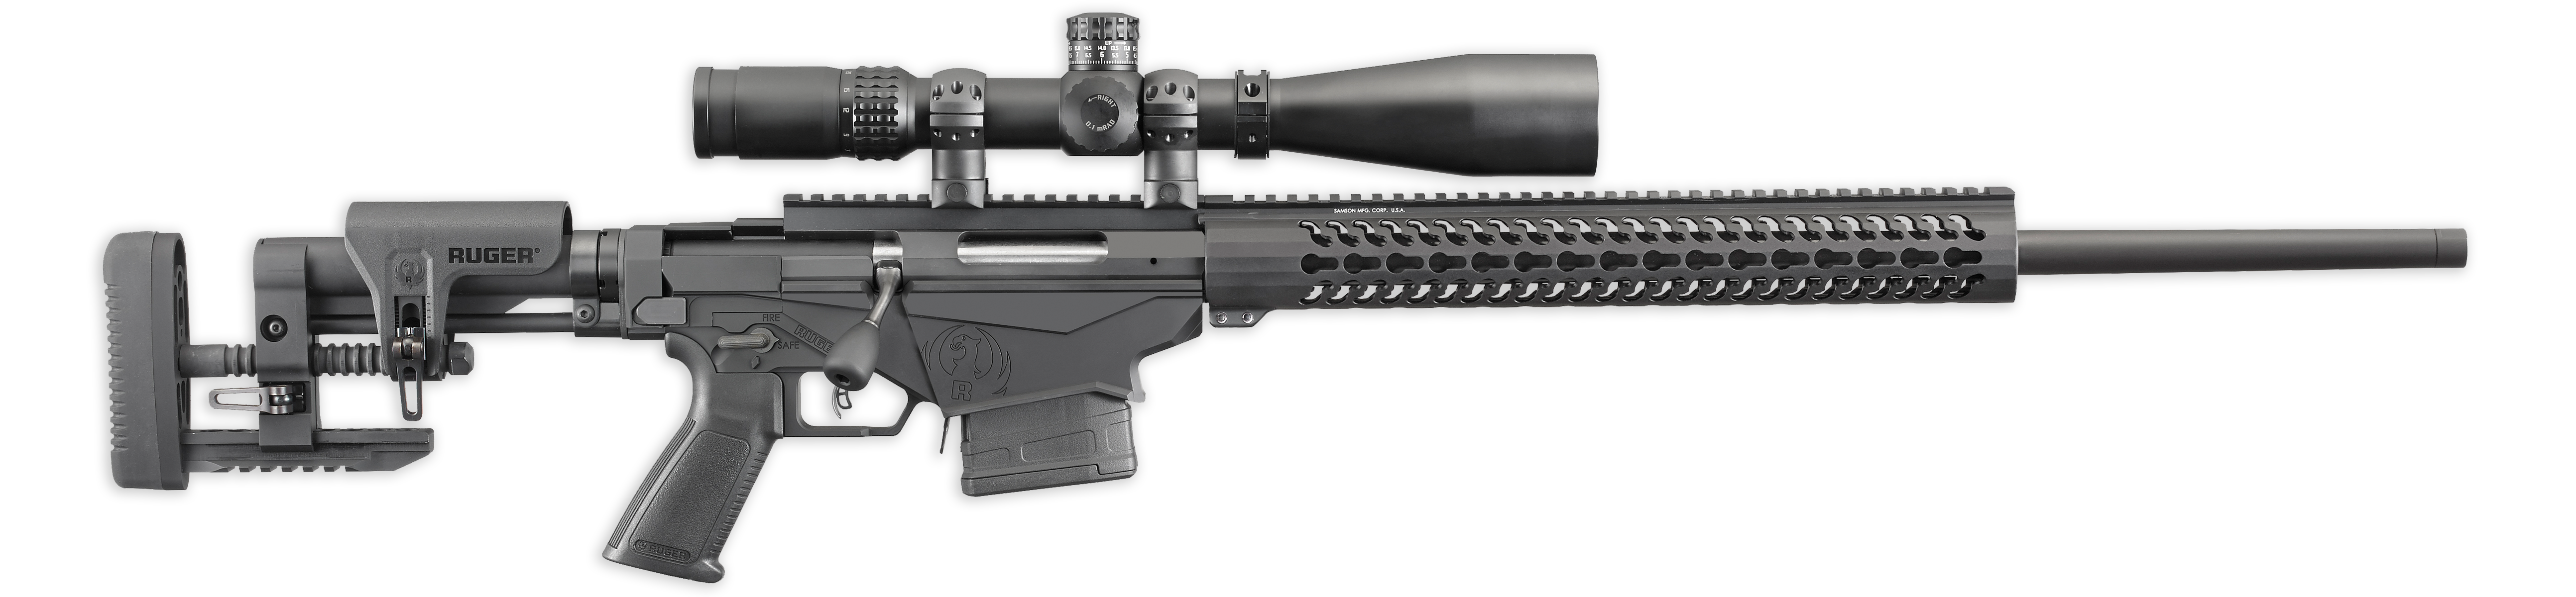 Ruger Precision Rifle: Part 1